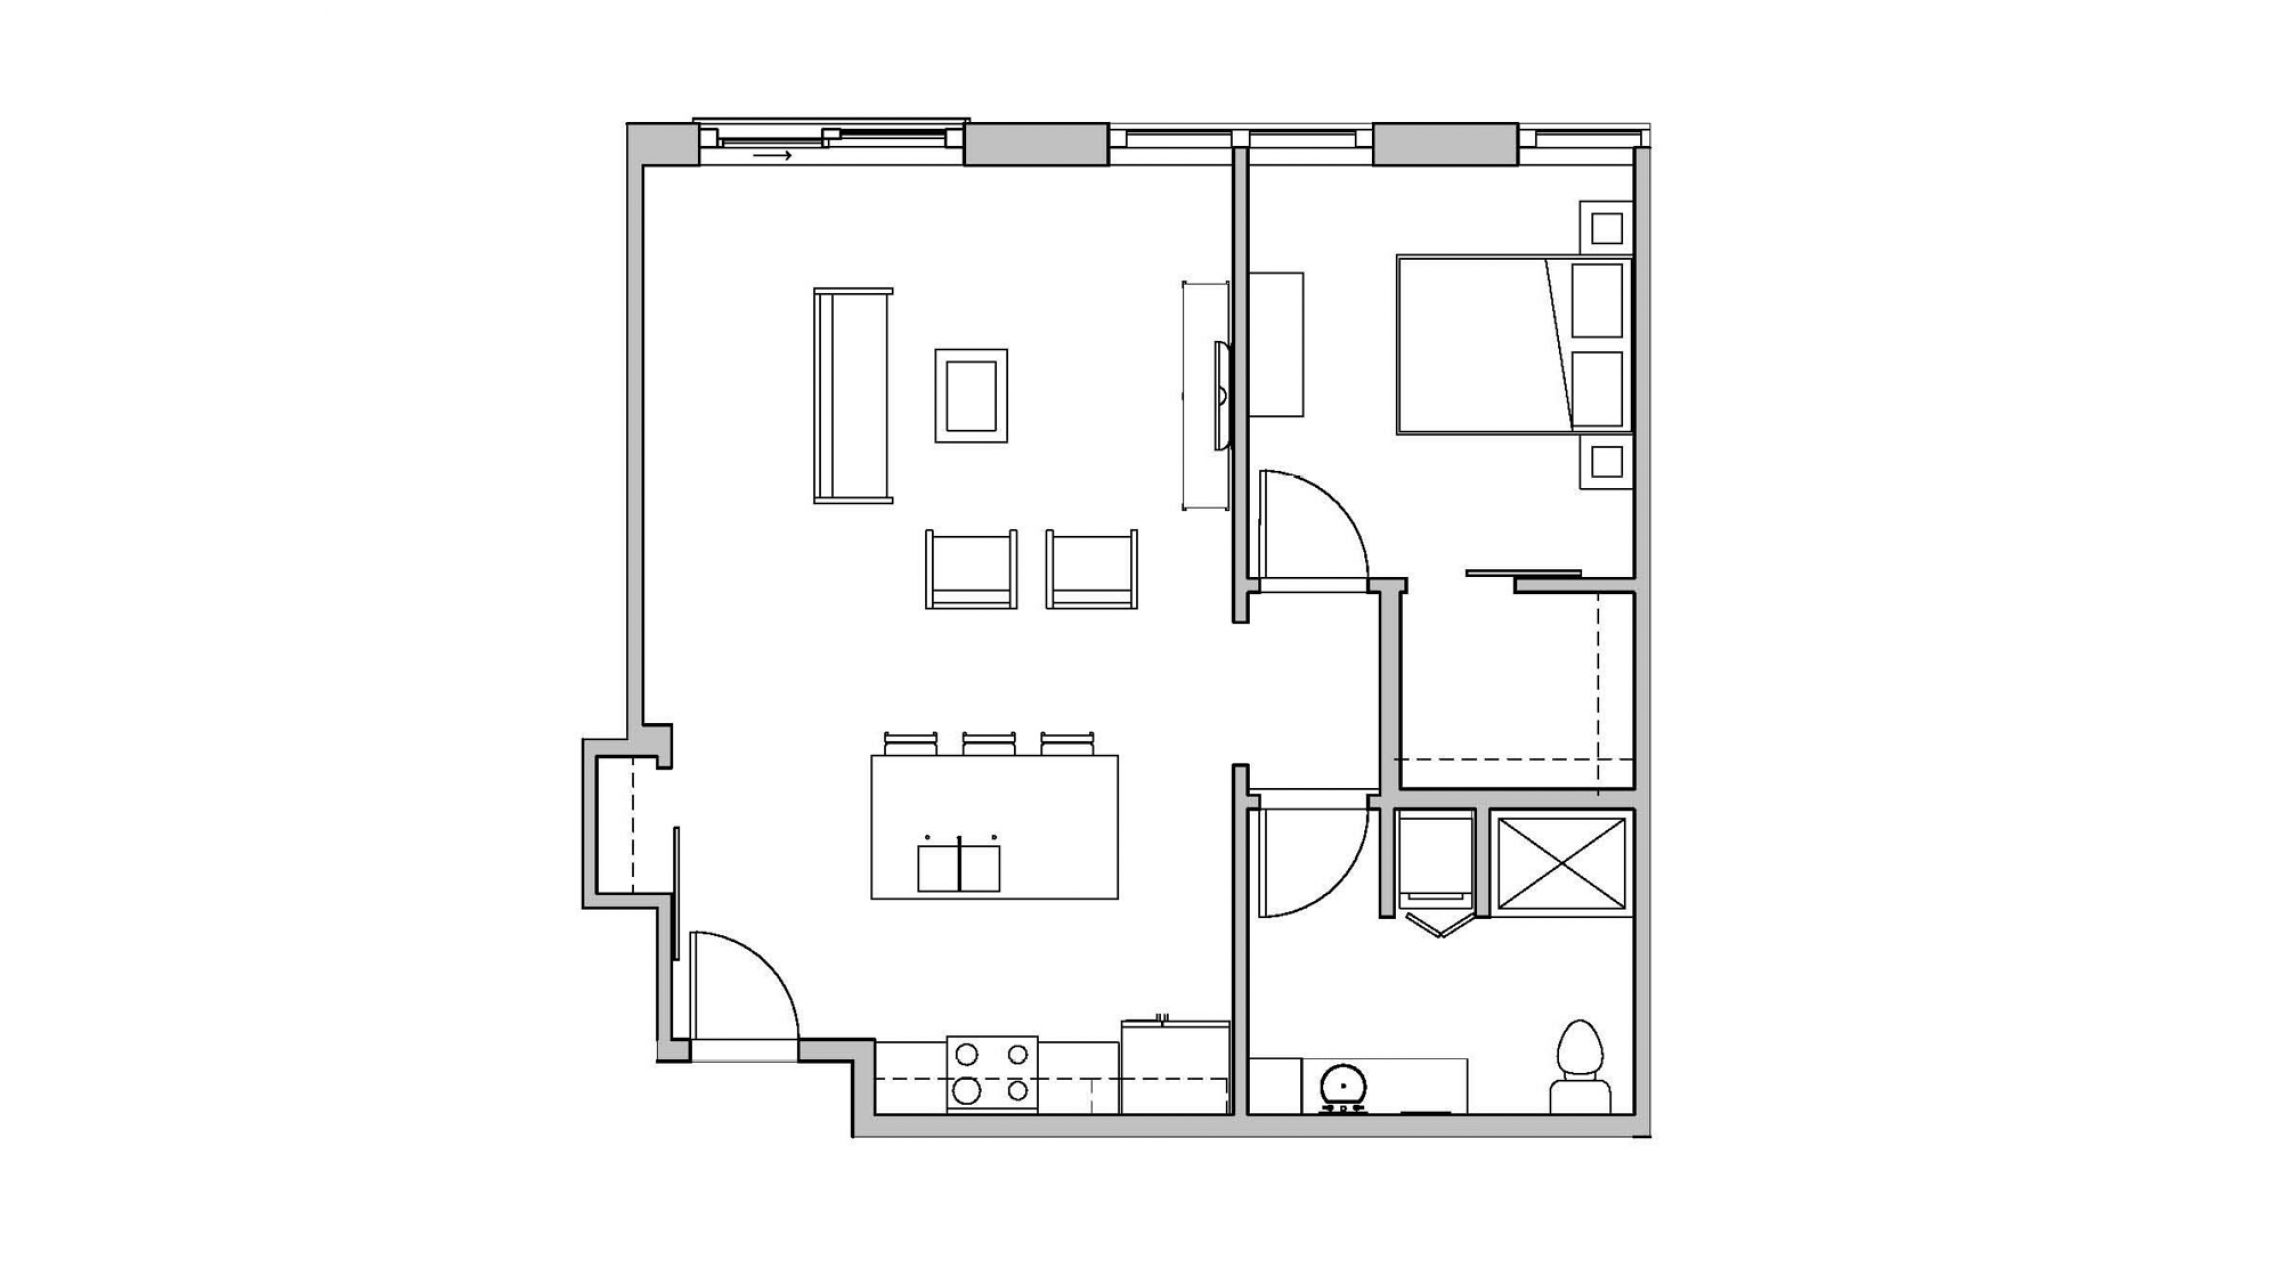 ULI Seven27 318 - One Bedroom, One Bathroom